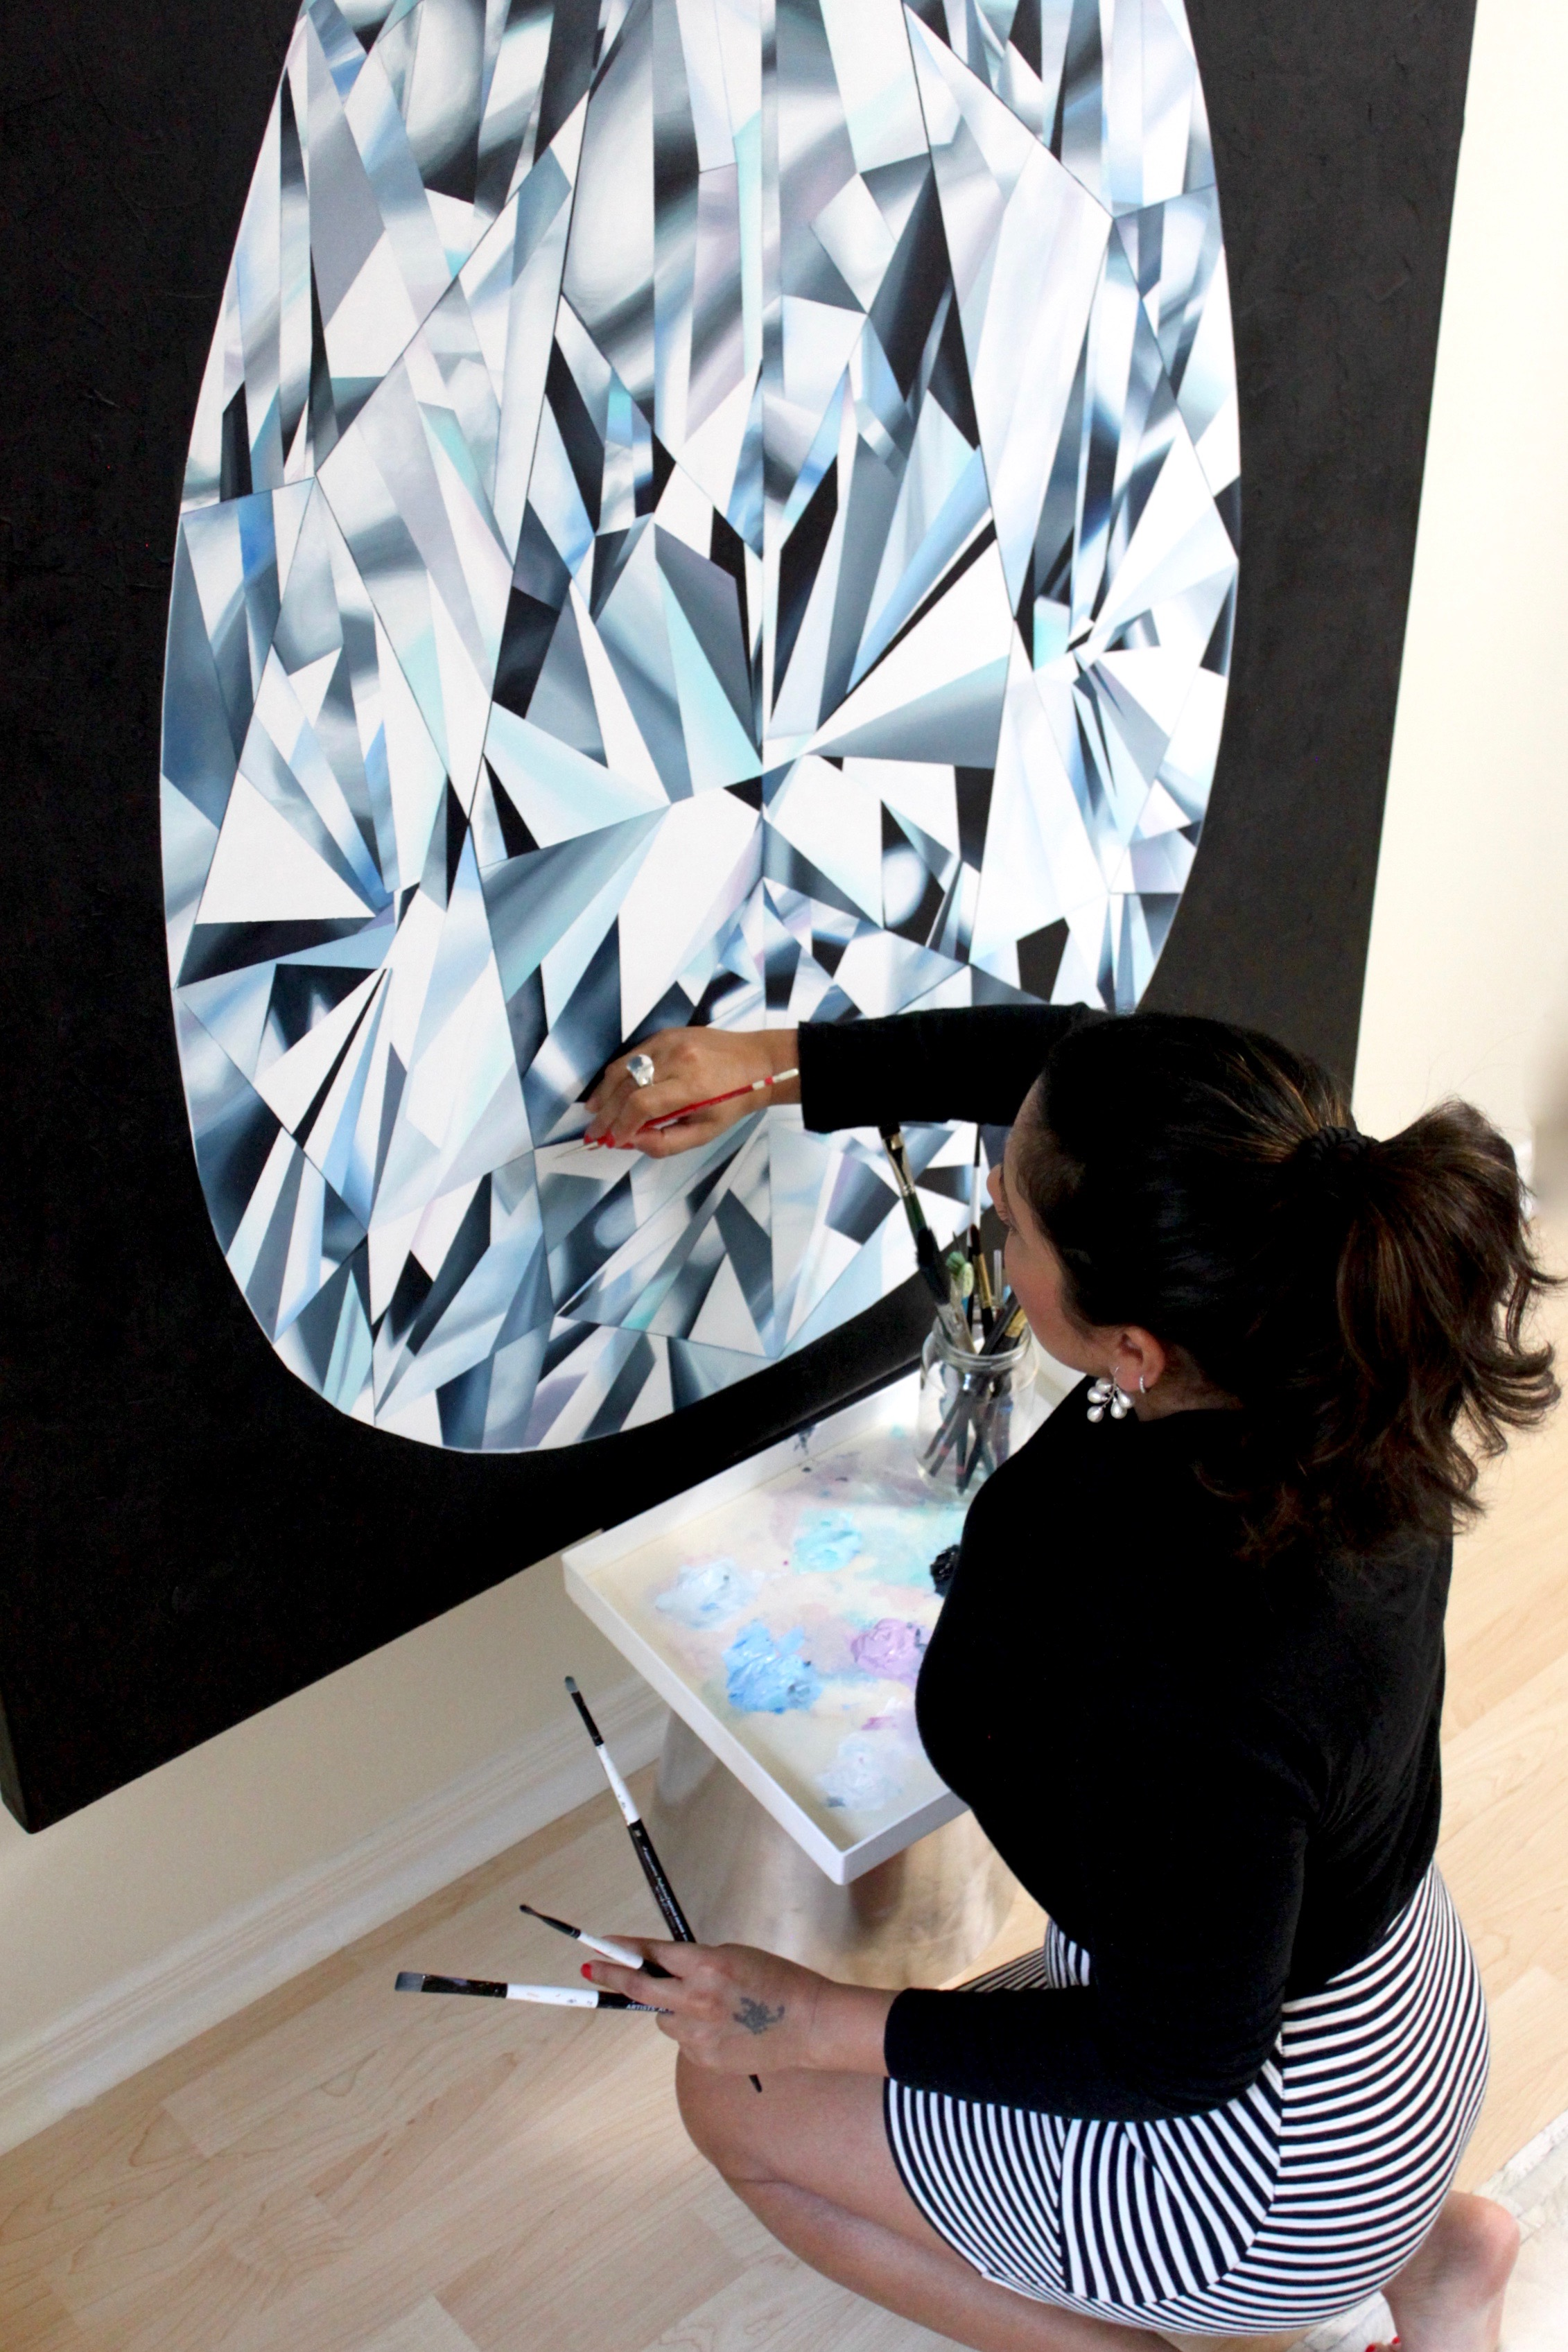 """Reena Ahluwalia during the making of the """"The Portrait of Perfection"""" - Portrait of a Pear Shaped Diamond. 60""""x 48"""" [5.0 x 4.0 Ft]. Acrylic on Canvas. ©Reena Ahluwalia"""